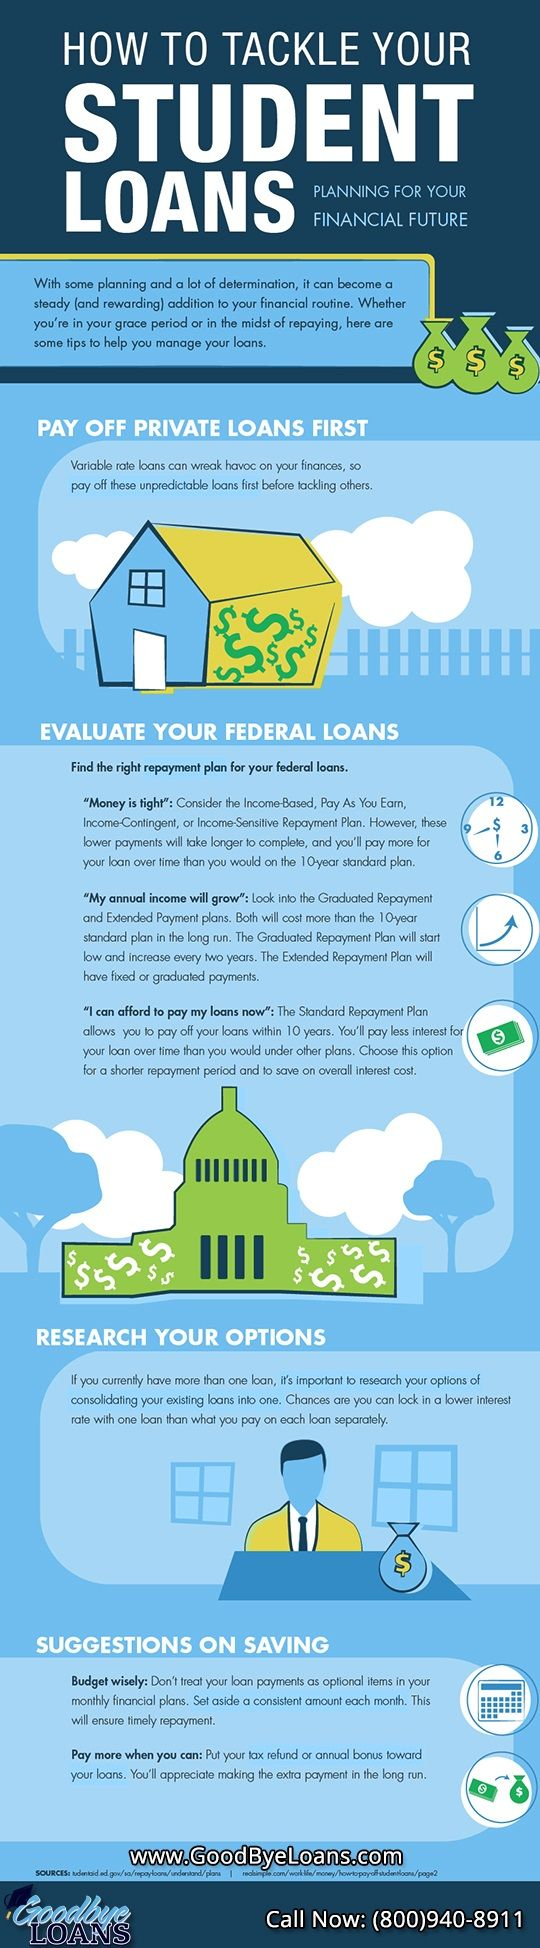 Pin By Adelio Axelle On Projects To Try Student Loan Forgiveness Student Loans Student Loan Repayment